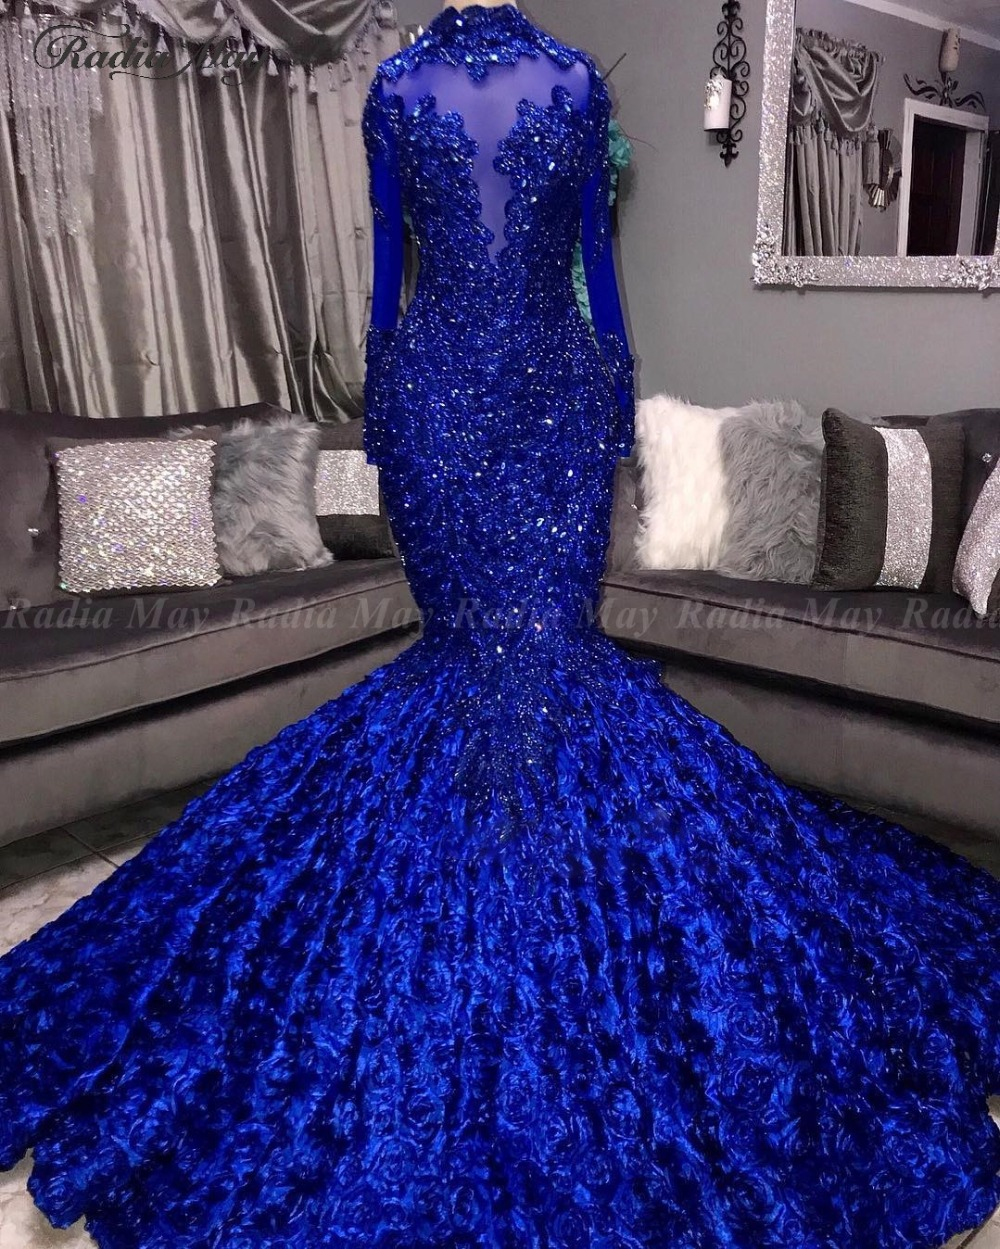 Royal Blue 3D Floral Mermaid Prom Dresses Black Girls High Neck Long Sleeves African Plus Size